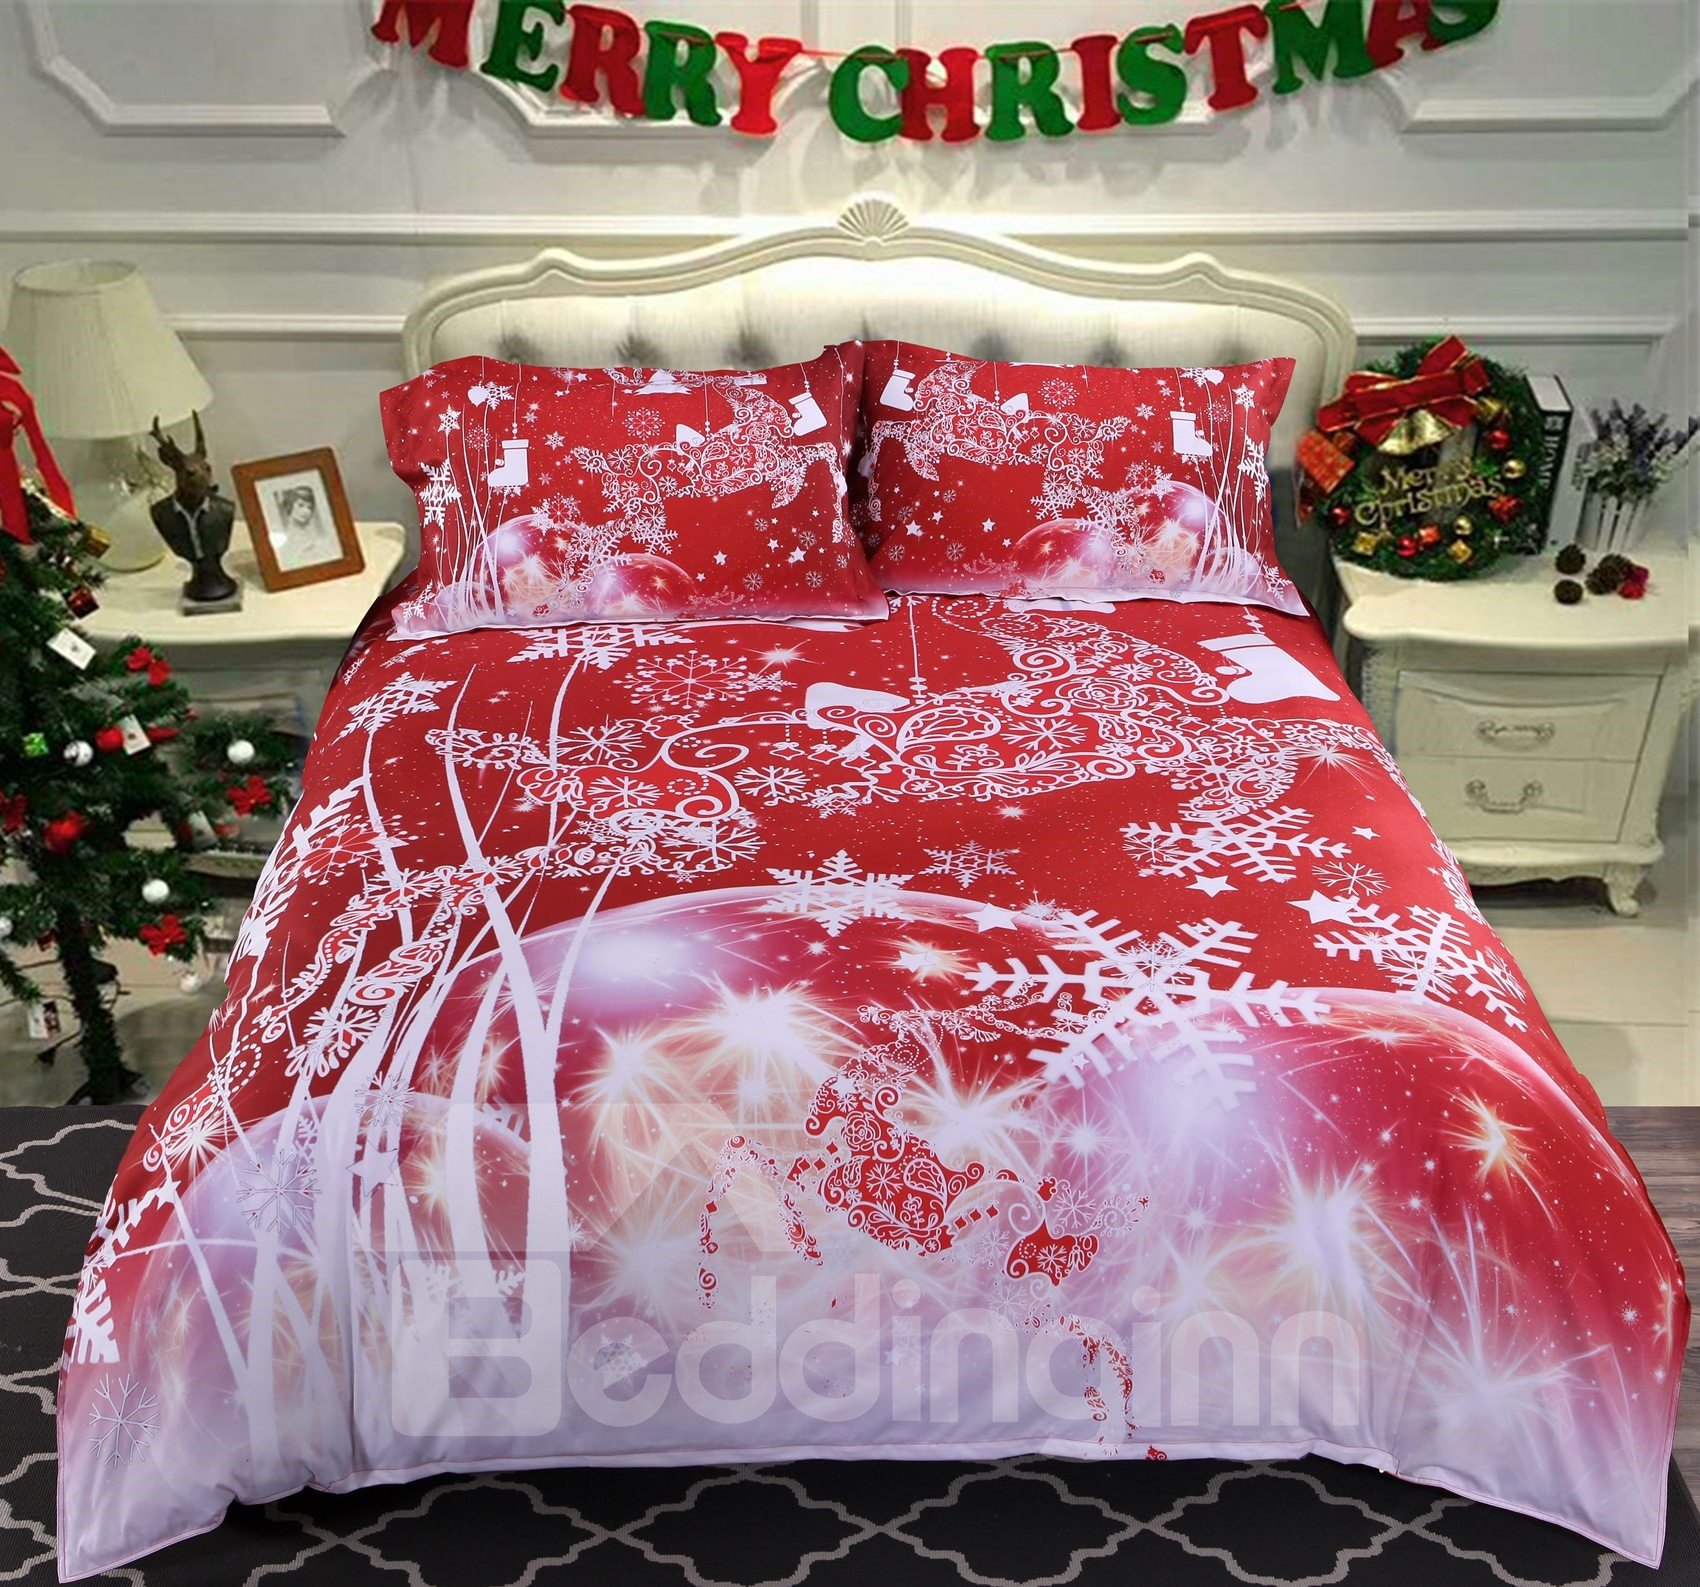 Onlwe 3D Christmas Reindeer and Snowflake Printed Cotton 4-Piece Red Bedding Sets